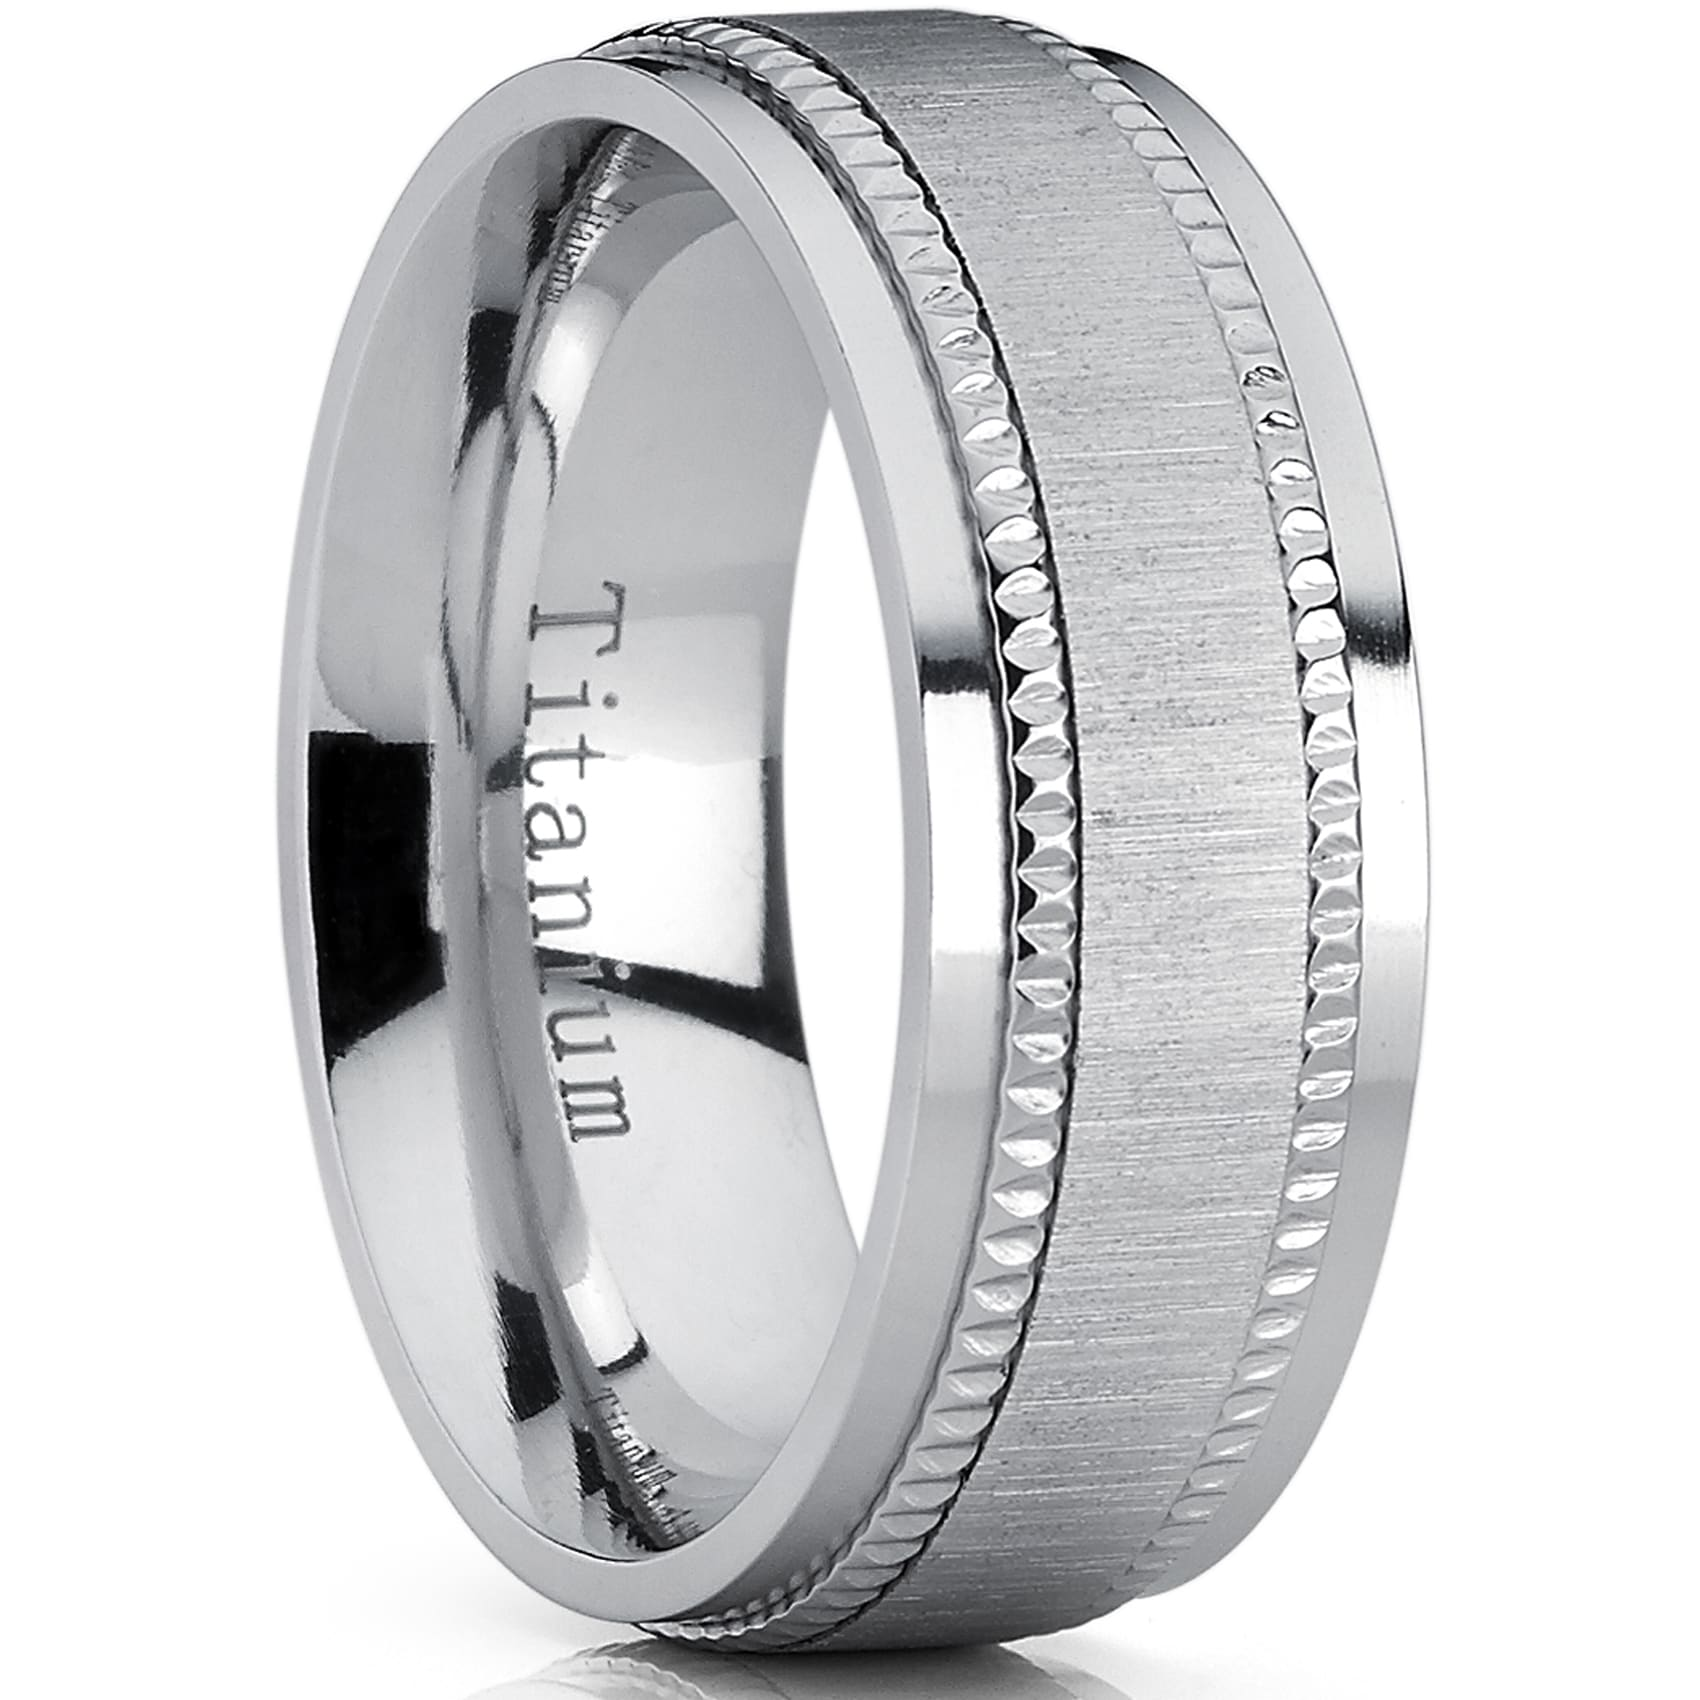 s bands titanium beaverbrooks brushed mens polished p ring the men context large